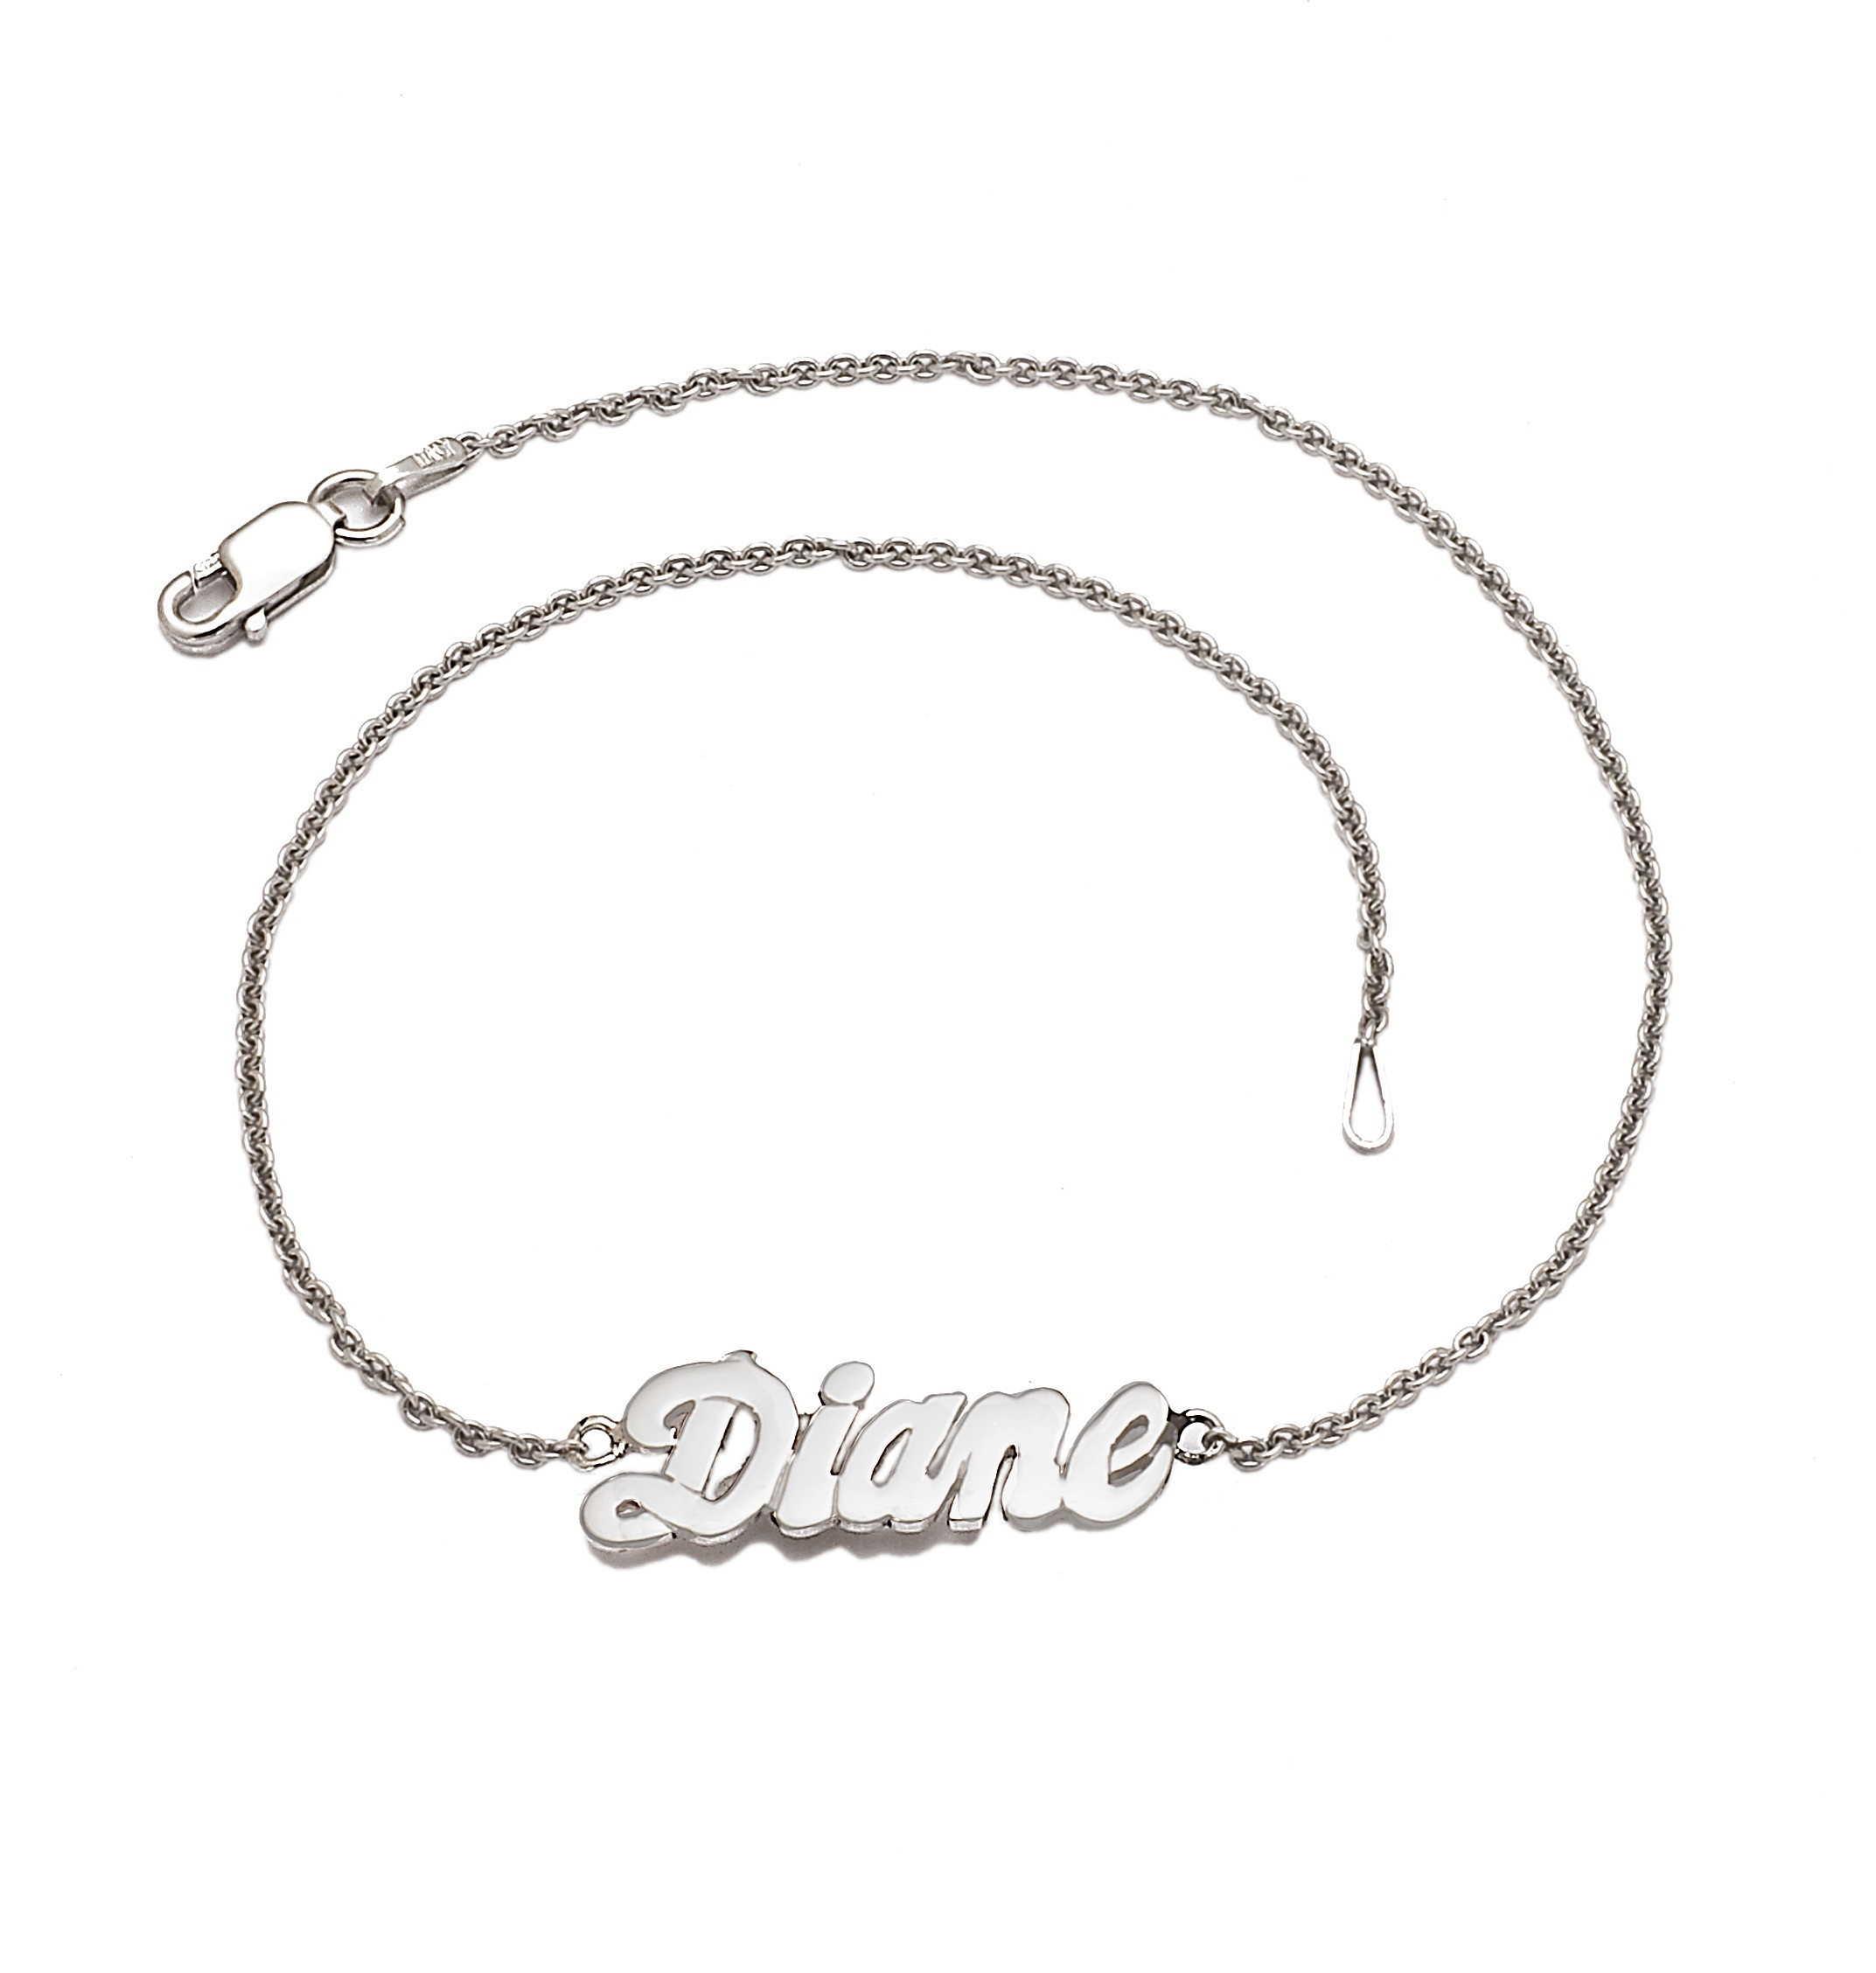 name bracelet jewellery anklet personalised uk sterling any amazon silver with co dp